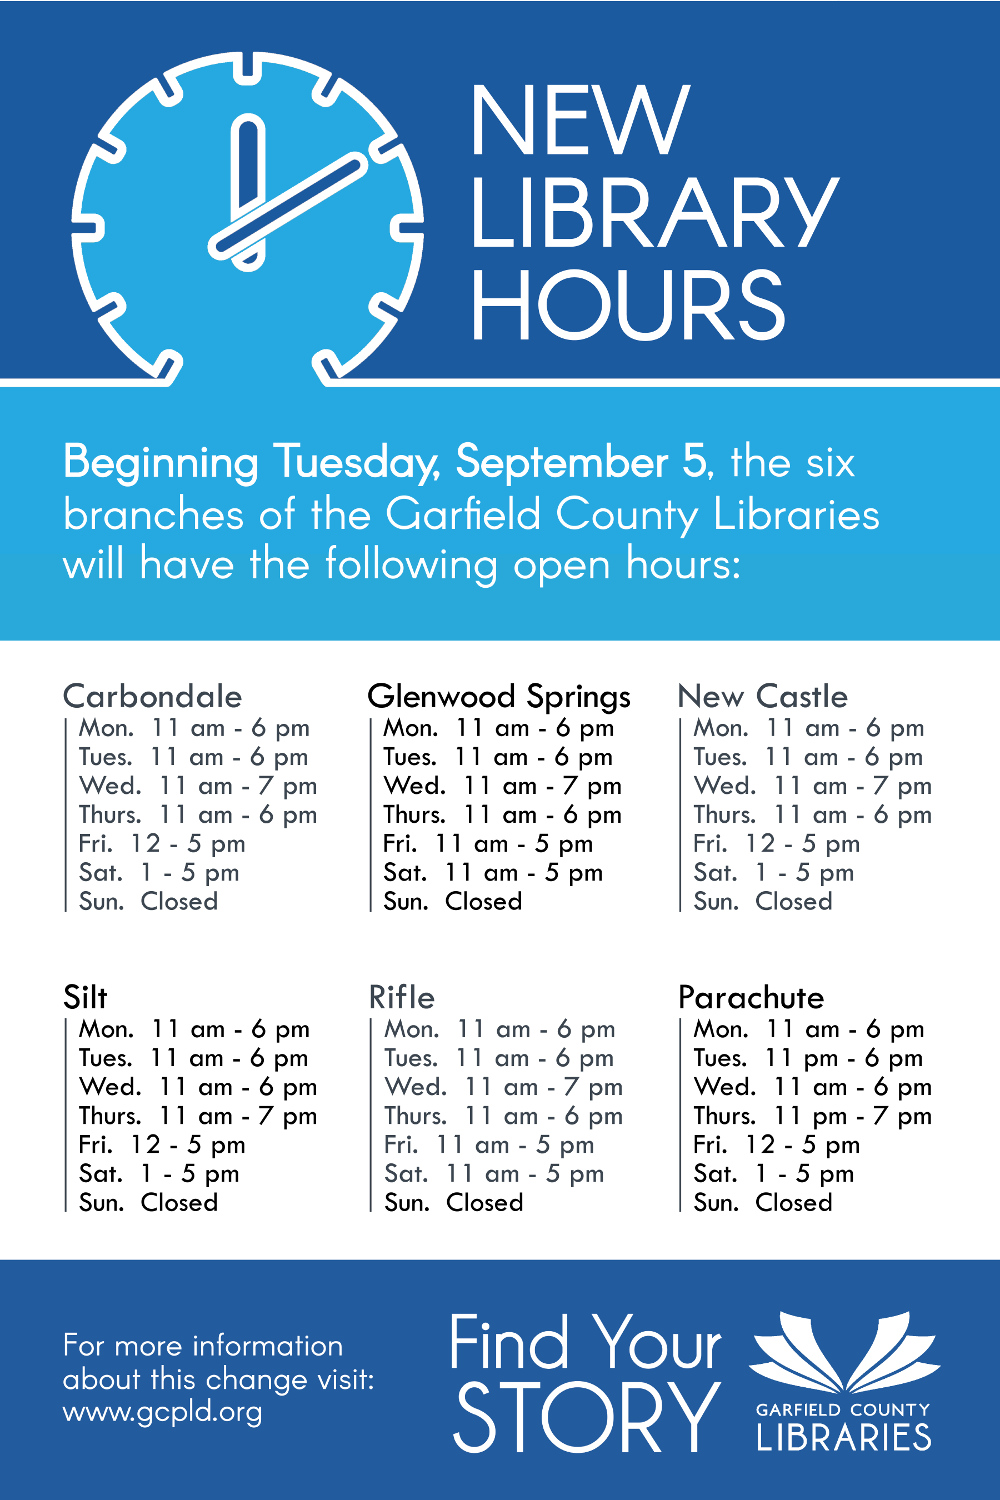 Garfield County Libraries start new hours September 5, 2017